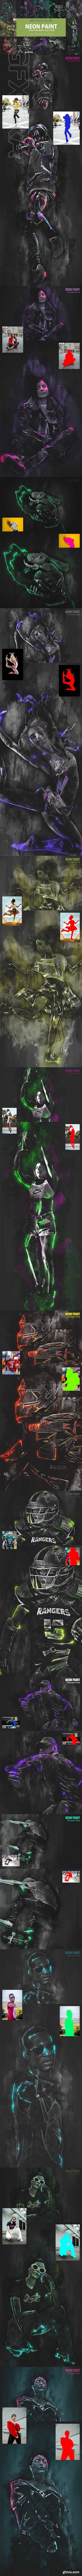 CreativeMarket - Neon Paint Photoshop Action 3397698